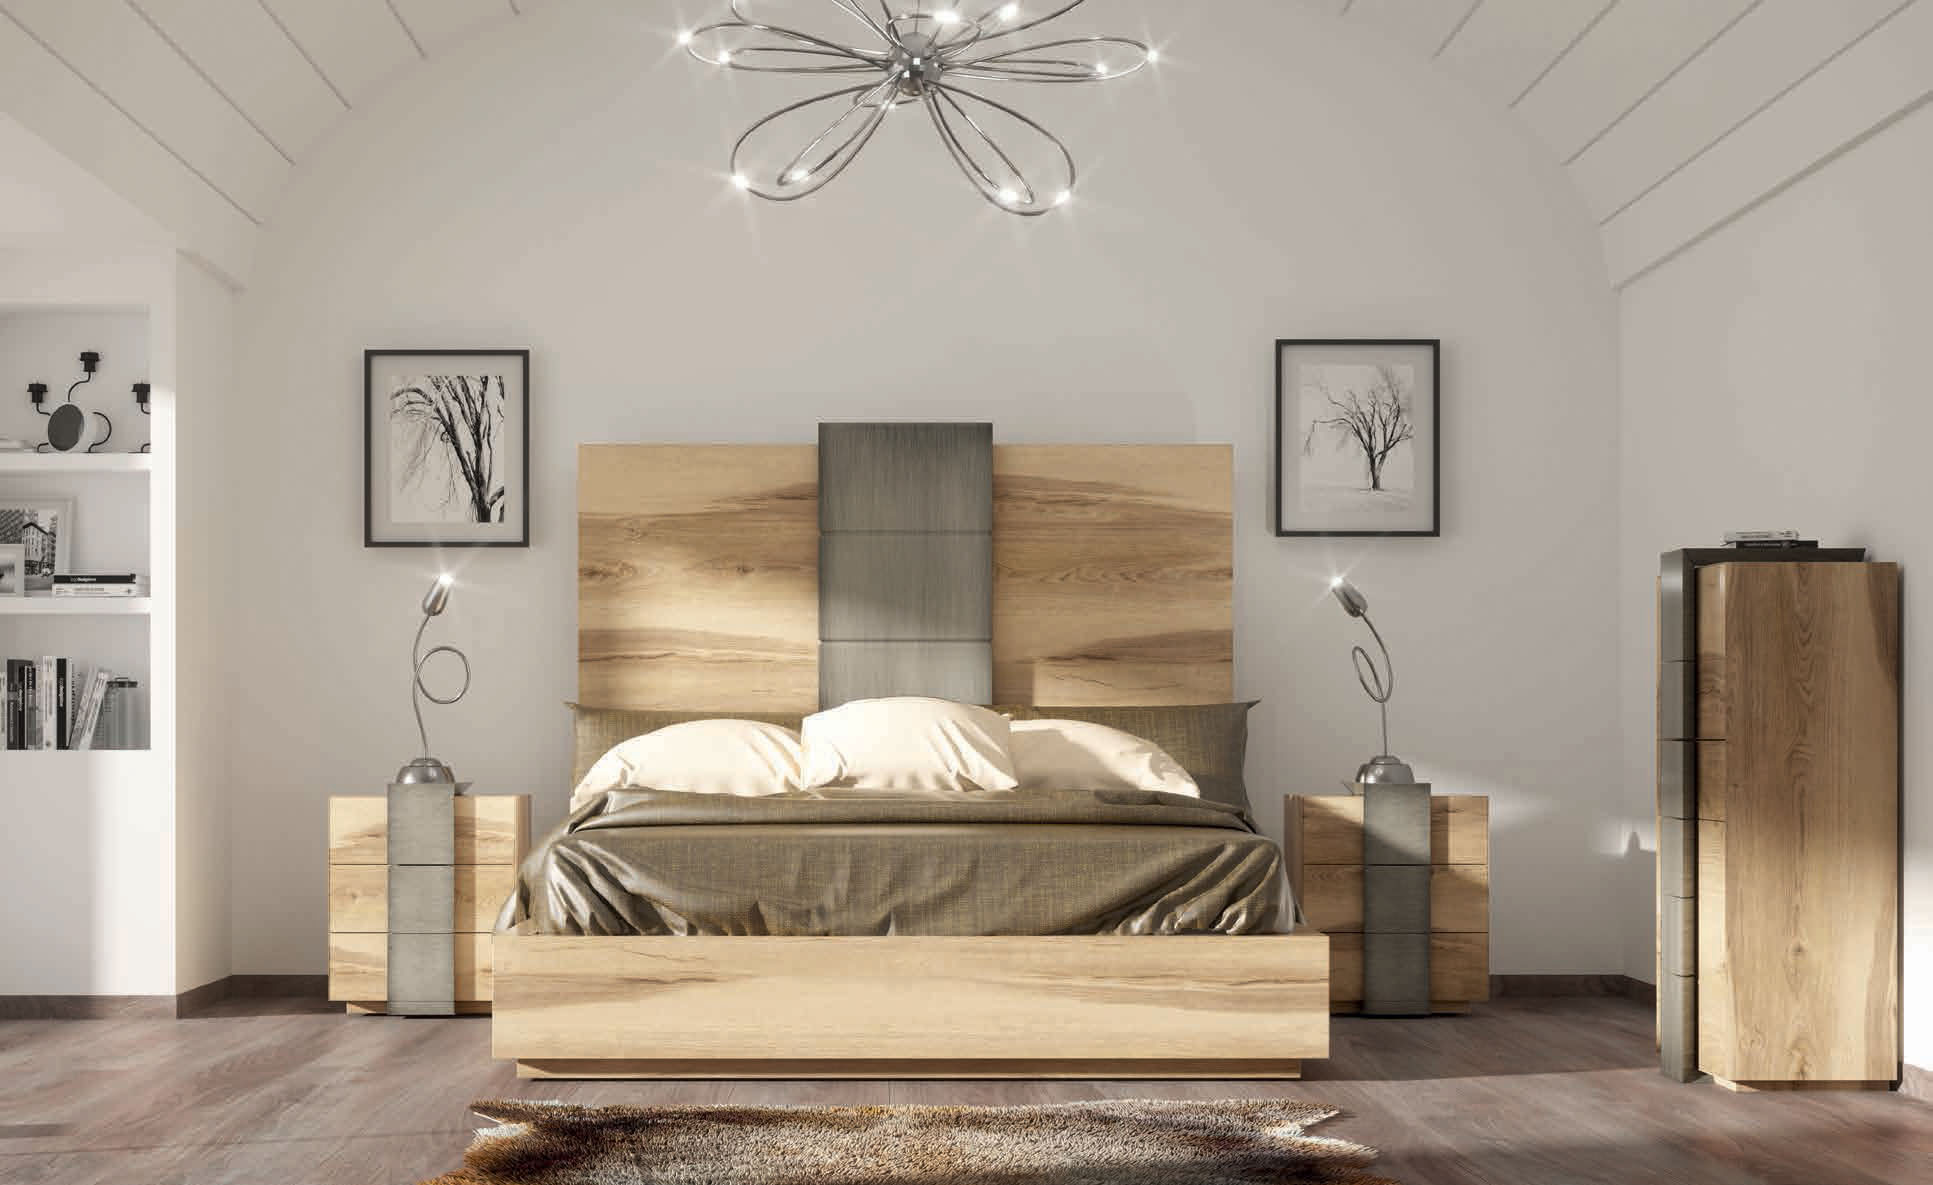 Brands Franco Furniture Bedrooms vol1, Spain DOR 03